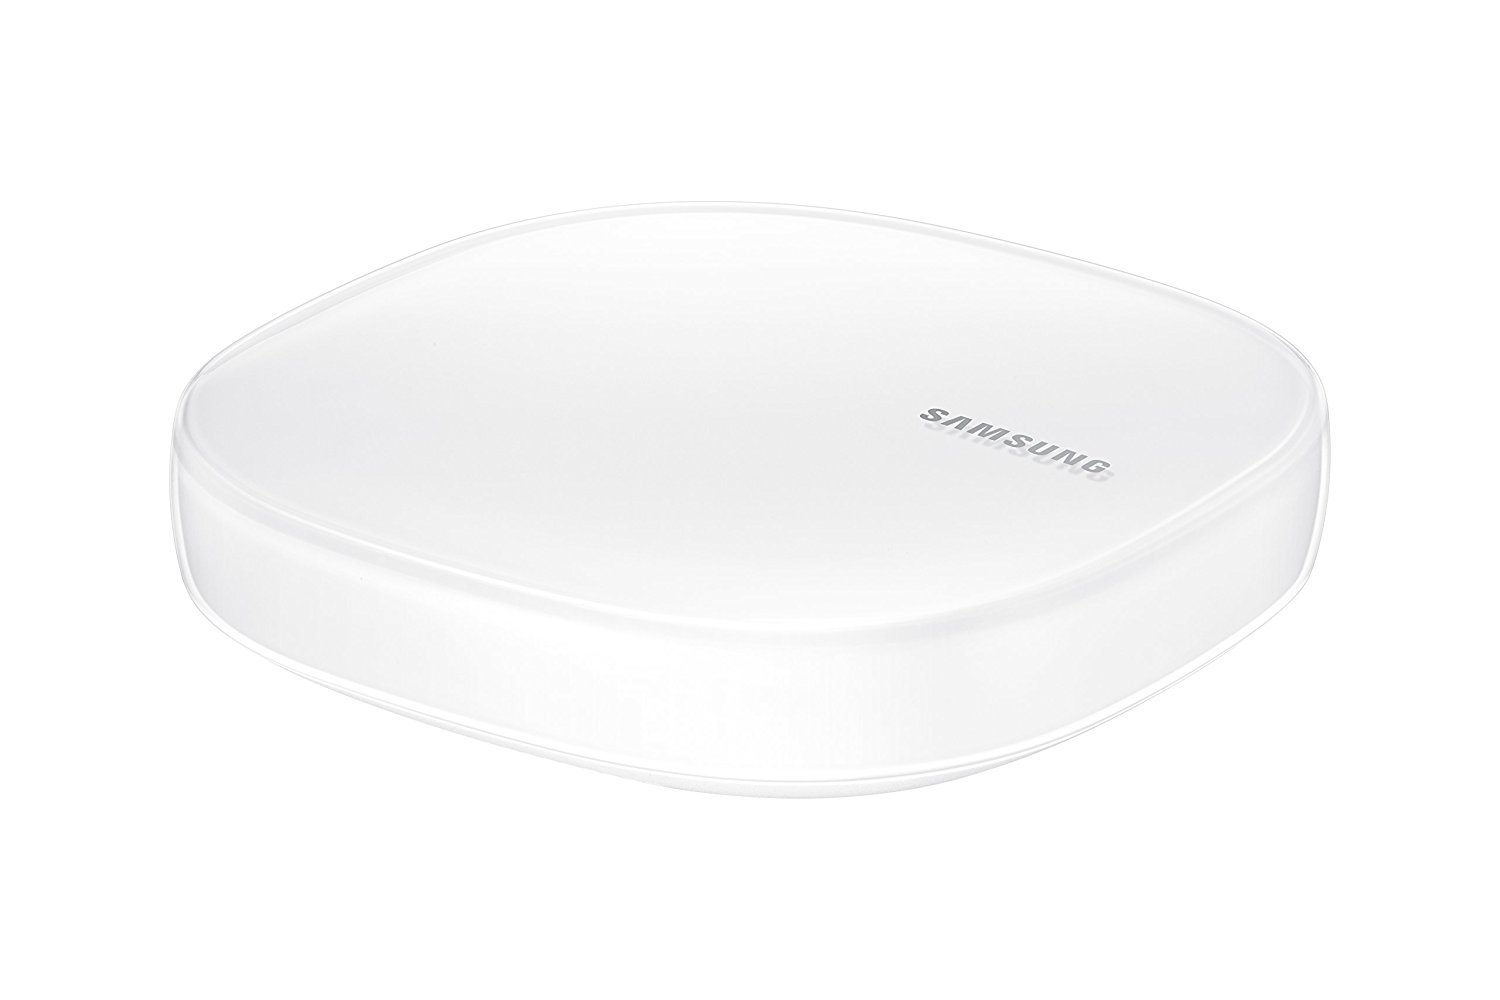 Samsung Connect Home Pro AC2600 Smart Wi-Fi System Bin:1